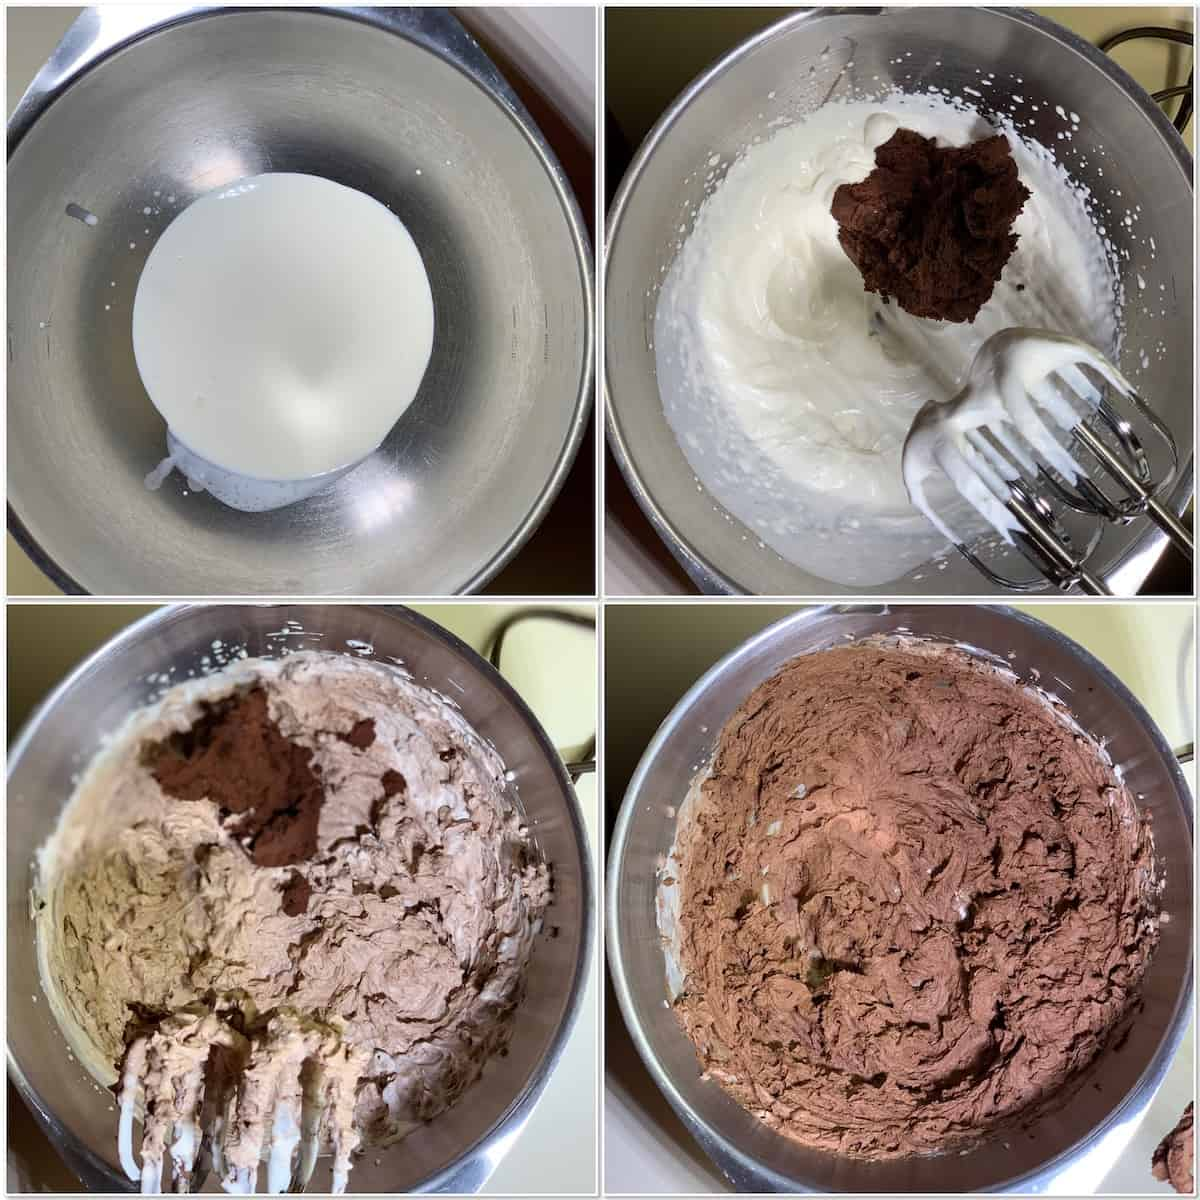 Mini chocolate mousse cake mousse layer process - whipped cream